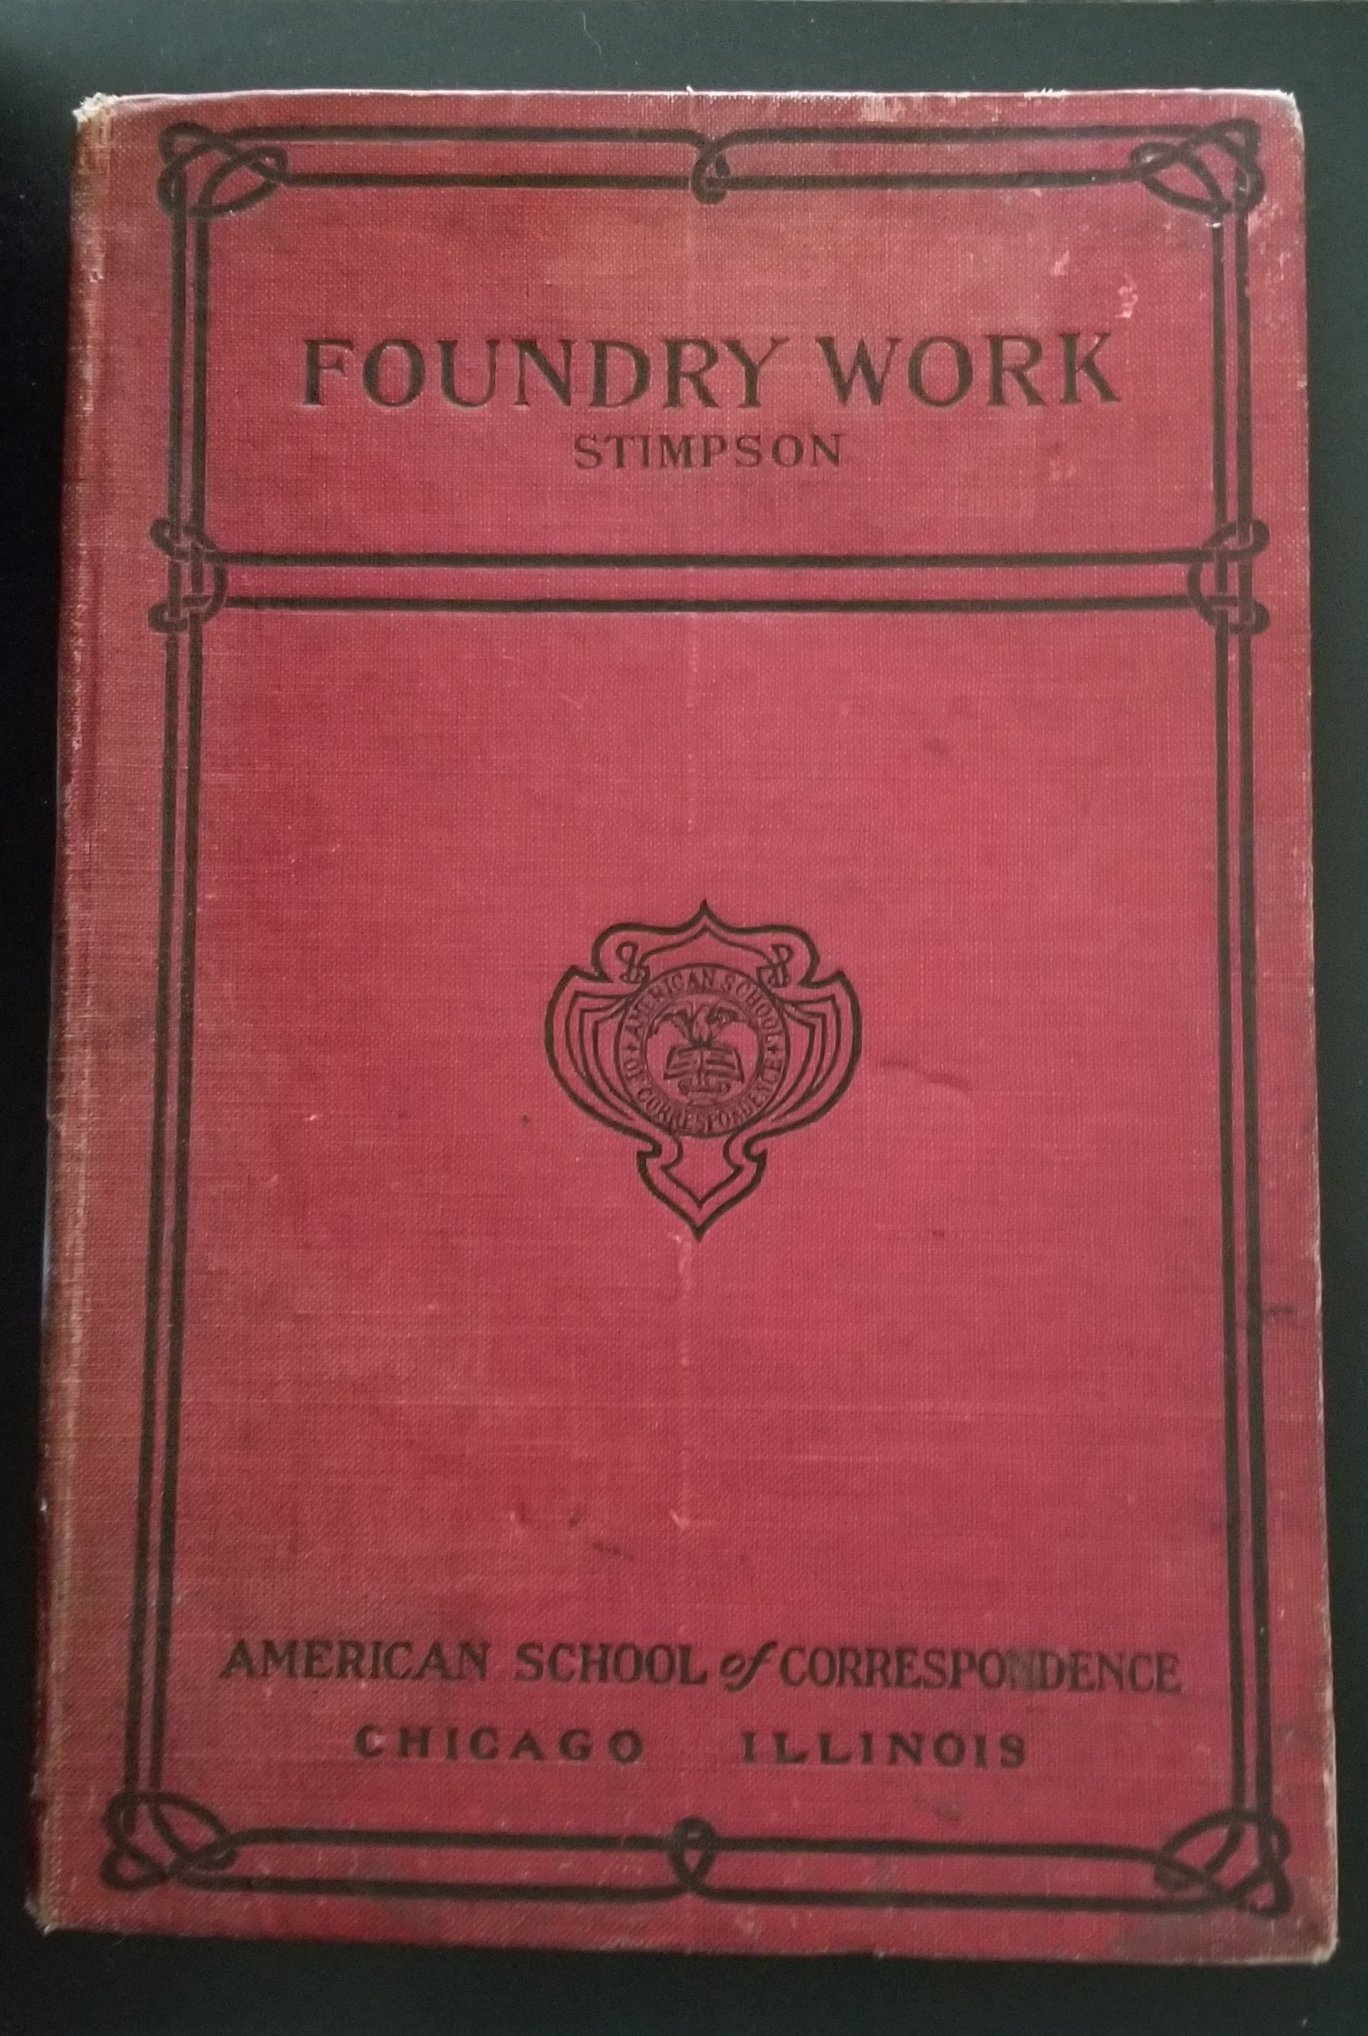 Image for Foundry Work. A Practical Guide to Modern Methods of Moulding and Casting in Iron, Bronze, Steel, and Other Metals, Including Many Valuable Hints on Shop Equipment and Management, Useful Tables, Etc.